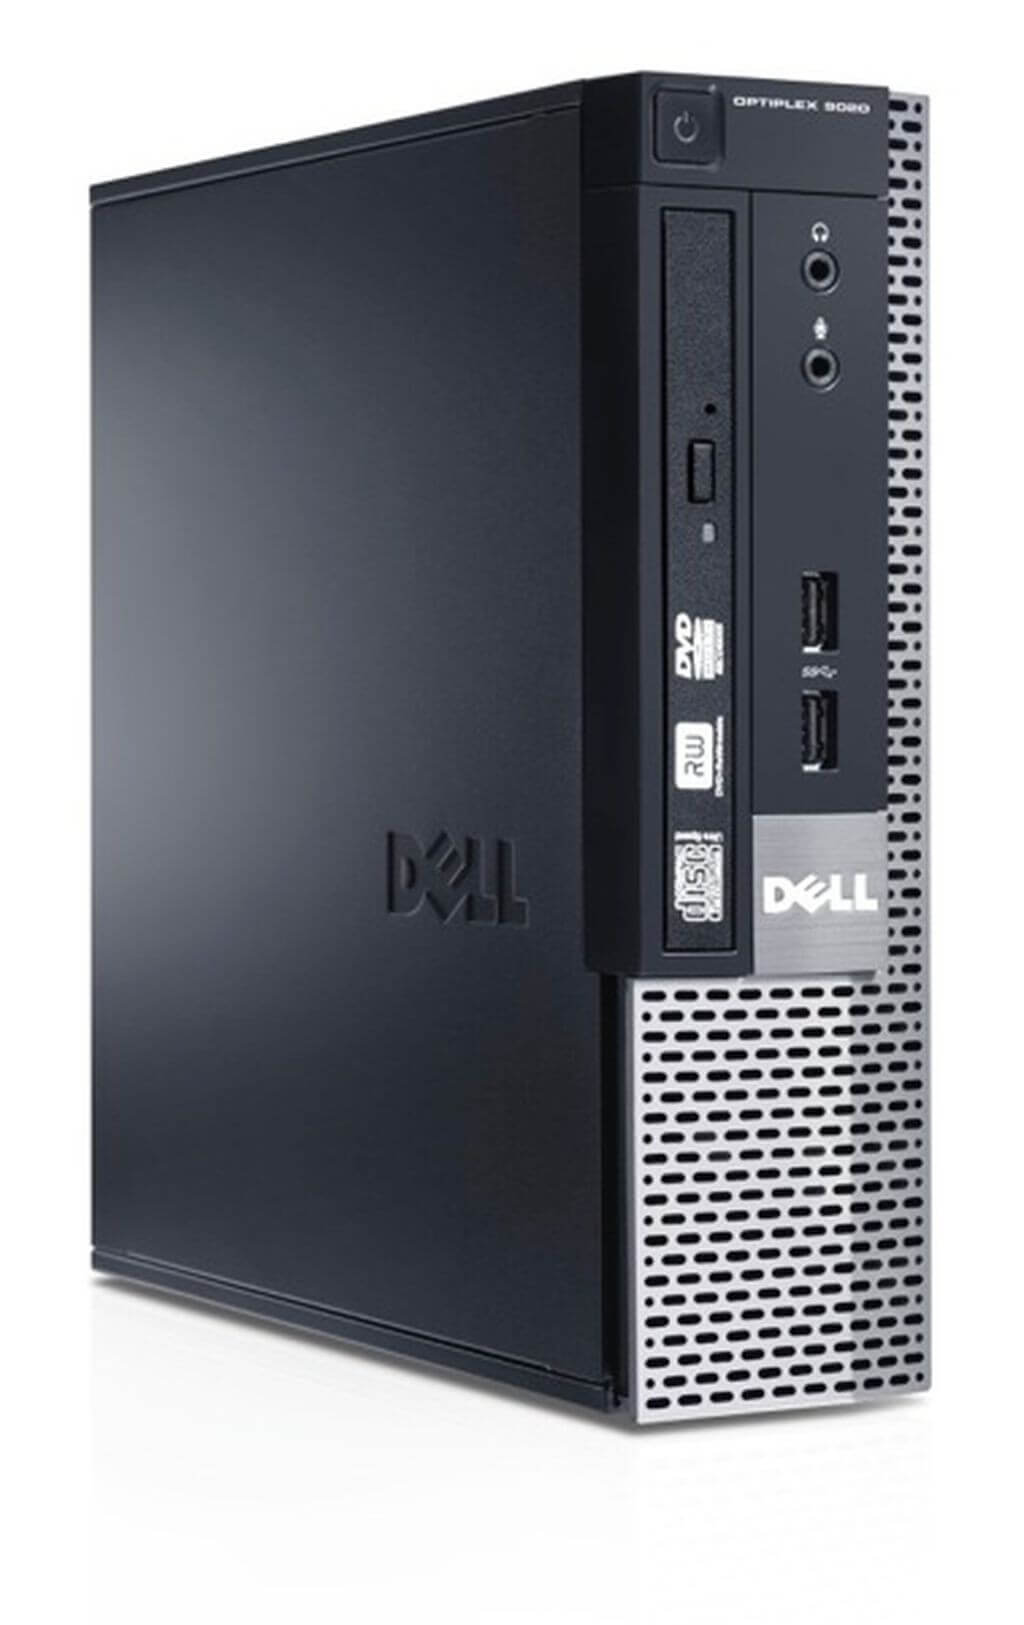 DELL 9020 USFF I5-4570S 2.9 / 8192 MB DDR3 / 128 GB SSD / DVD-RW / WINDOWS 10 PRO